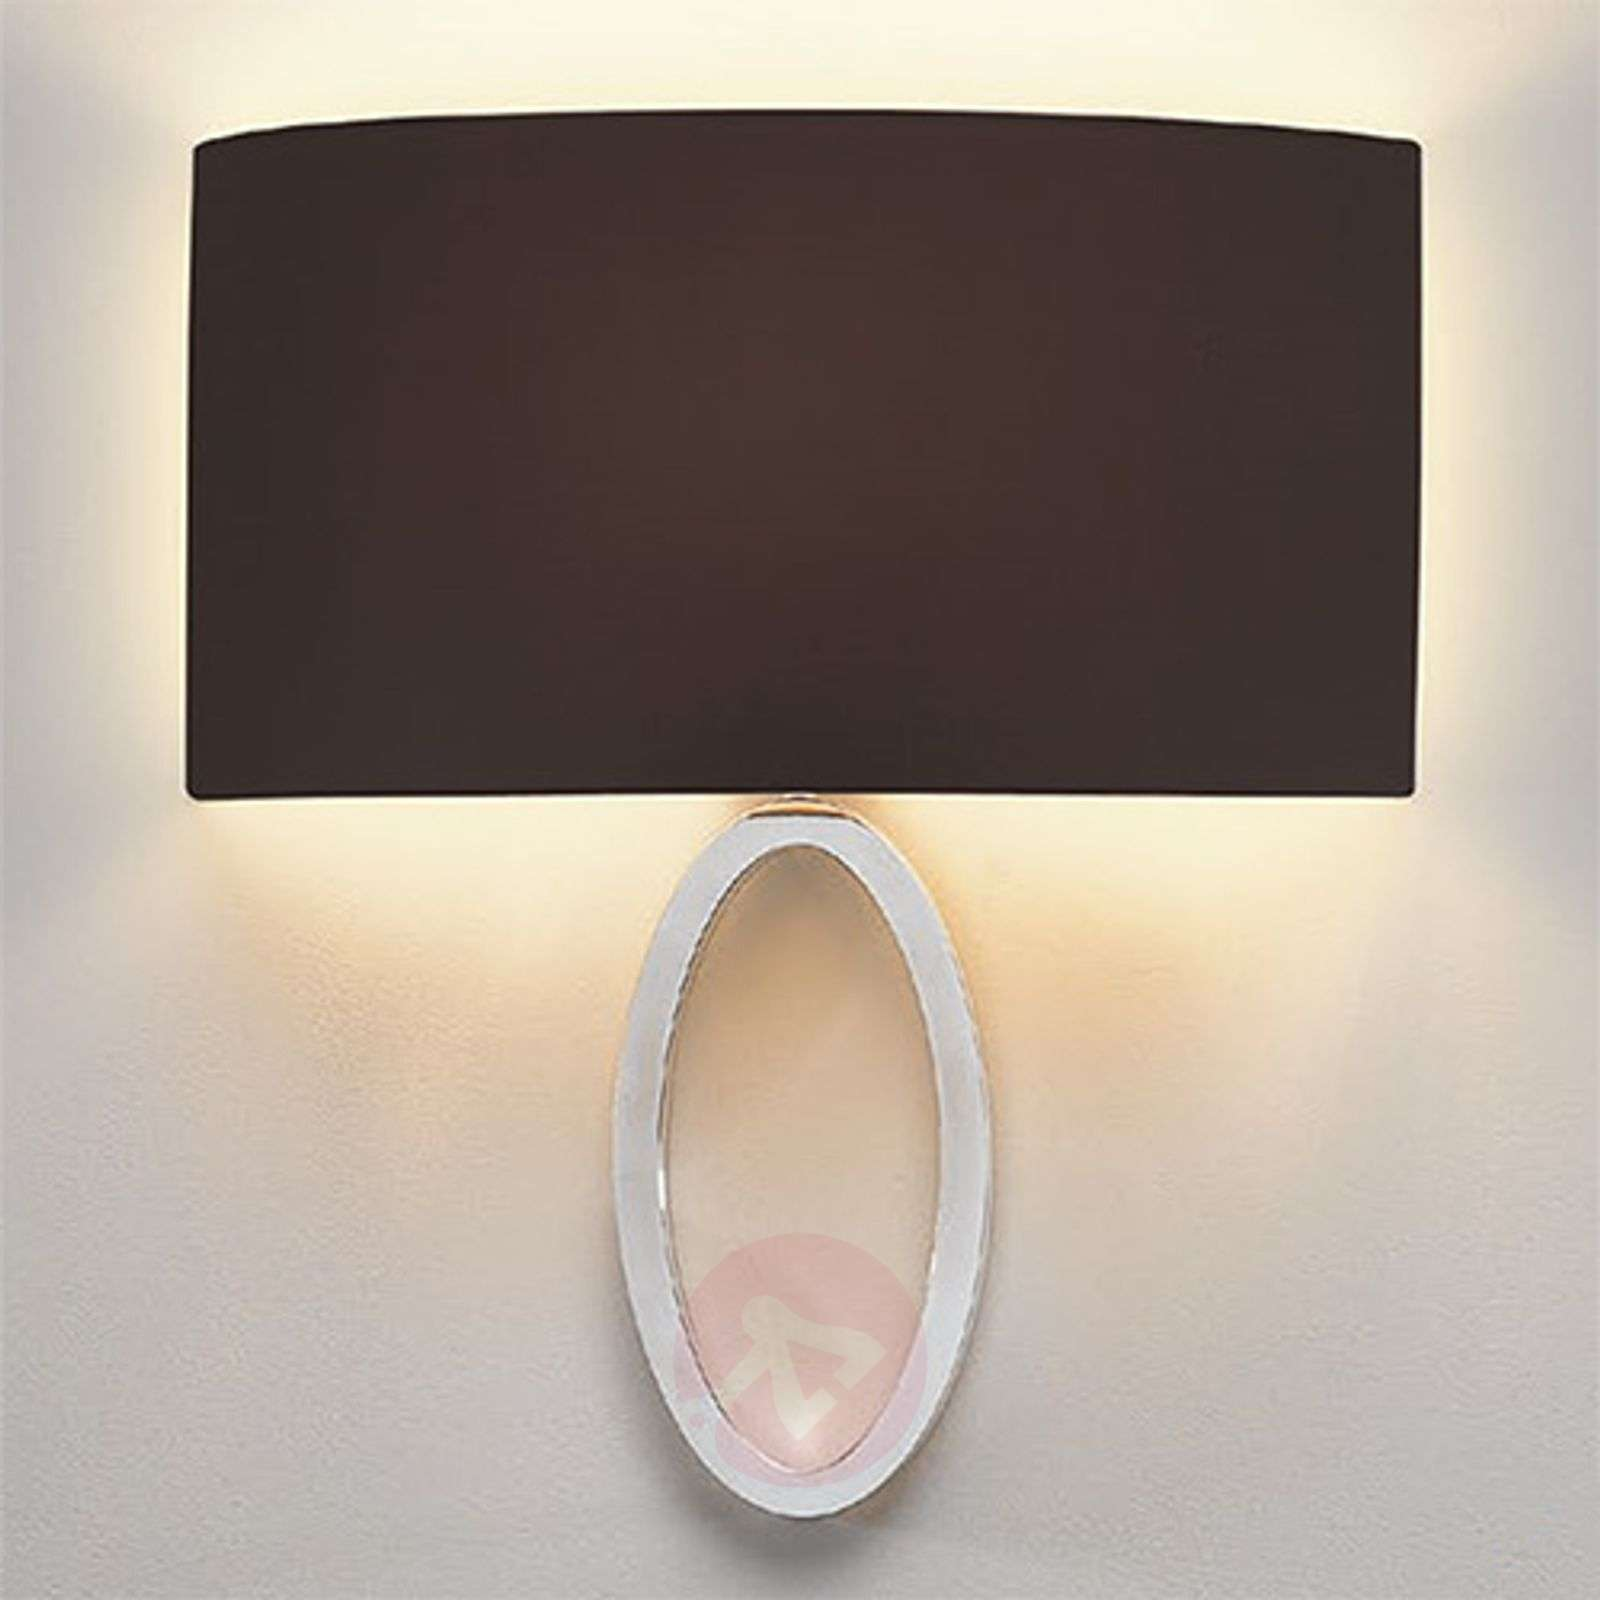 Black fabric wall light Lima-1020519-01